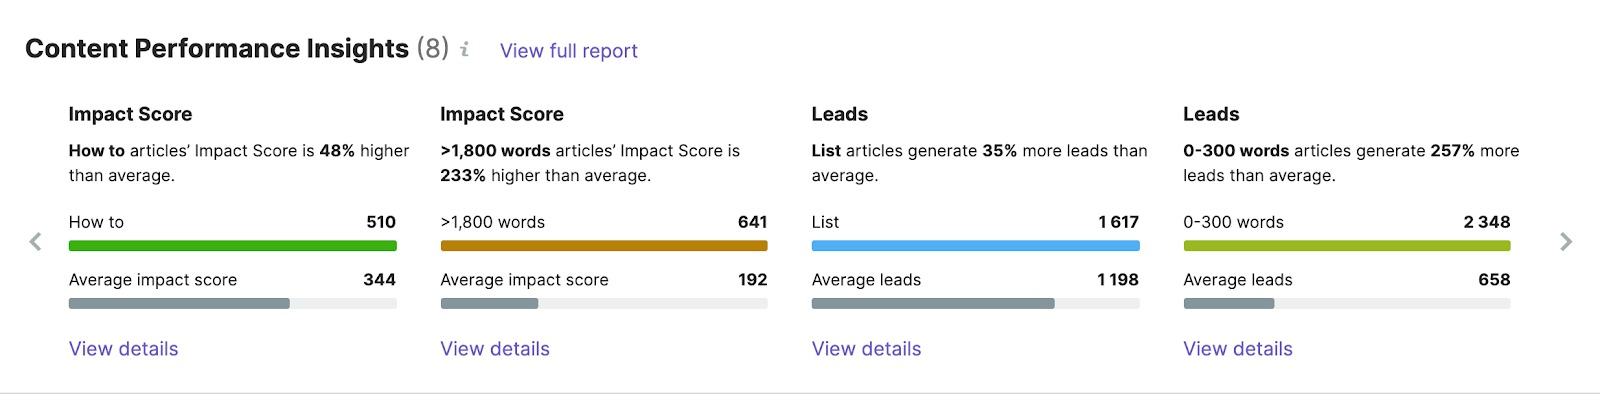 Content performance insights